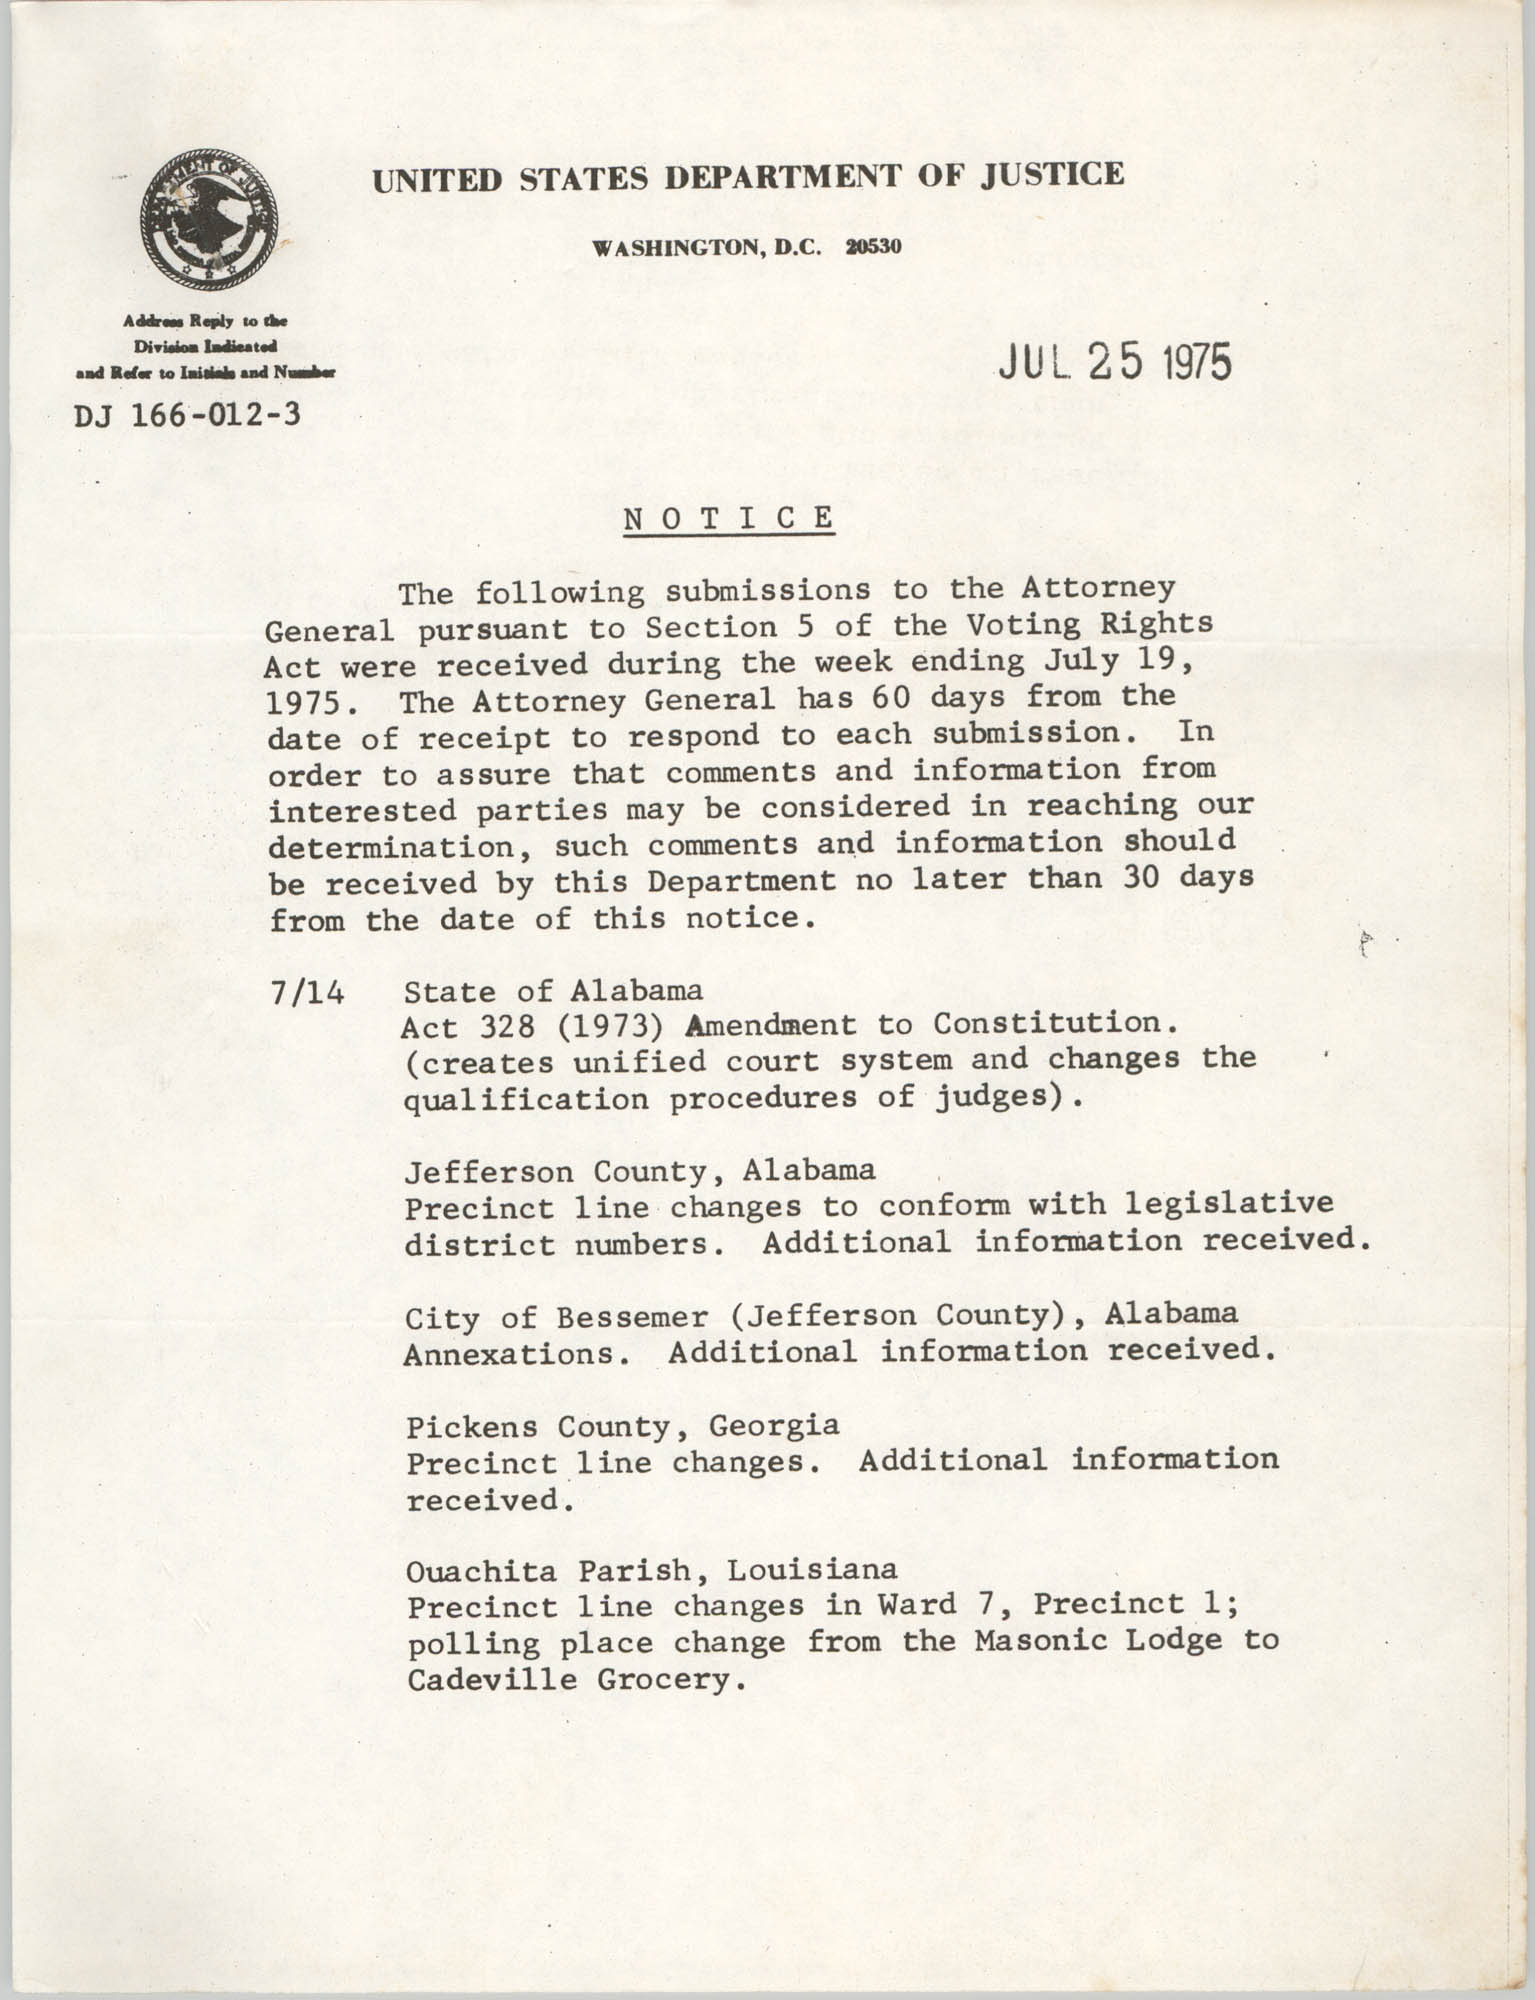 United States Department of Justice Notice, July 25, 1975